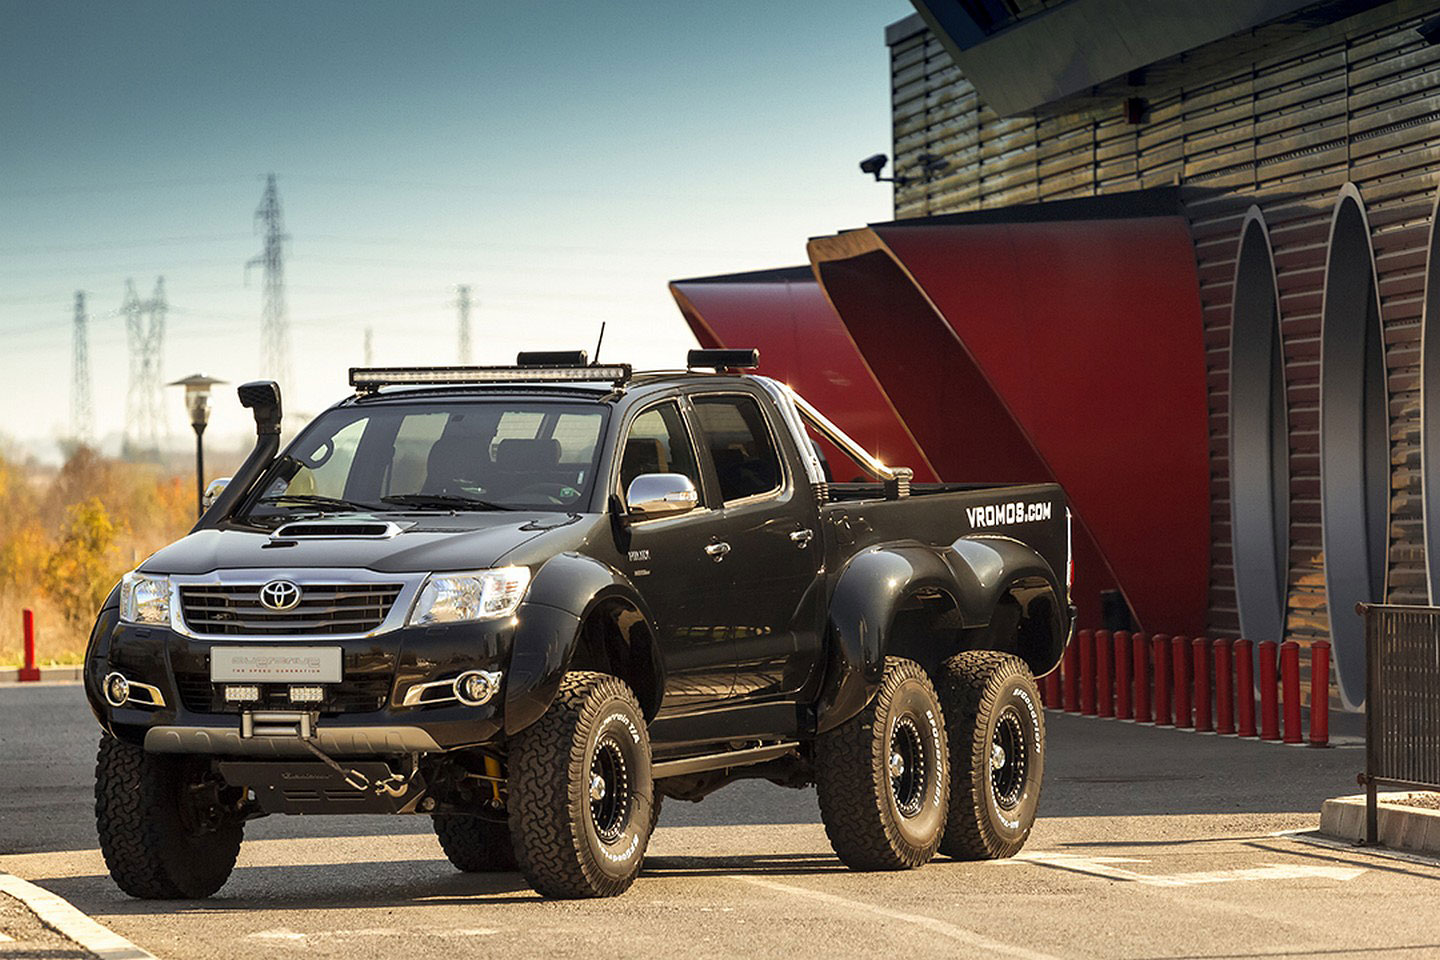 vromos toyota hilux 2016, toyota hilux 6x6, best toyota hilux 6x6, off road toyota hilux 6x6, price tag toyota hilux 6x6, vromos bulgaria, tuning vromos bulgaria, off road toyota hilux 6x6